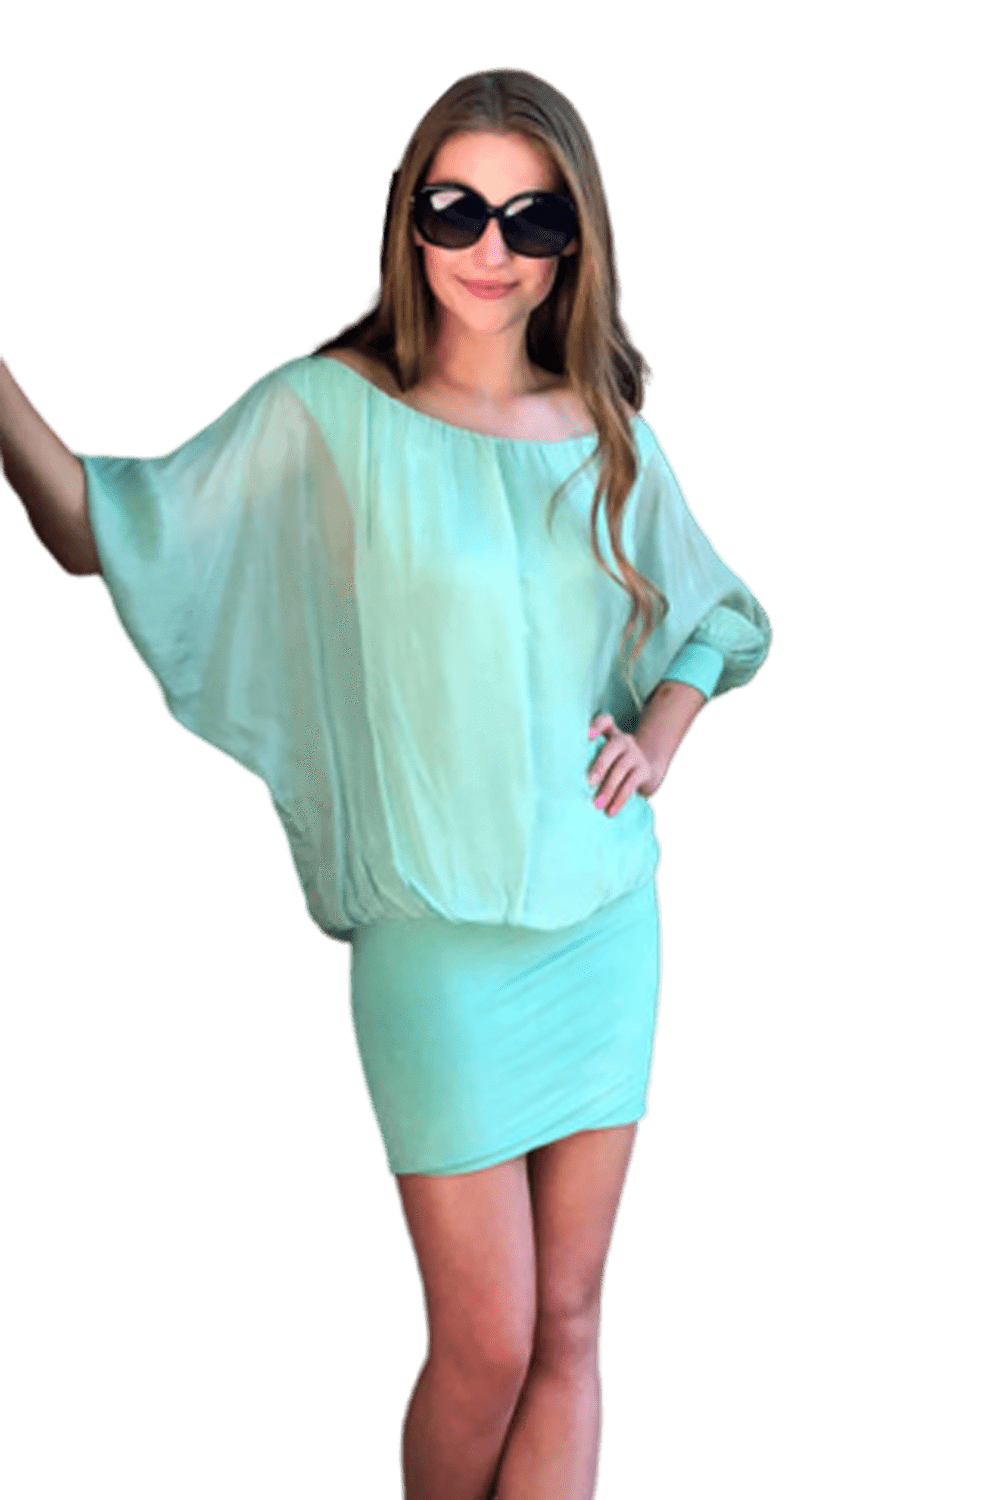 shop-sofia Tiara Mint Off the Shoulder Dress Sofia Collections Italian Silk Linen Satin